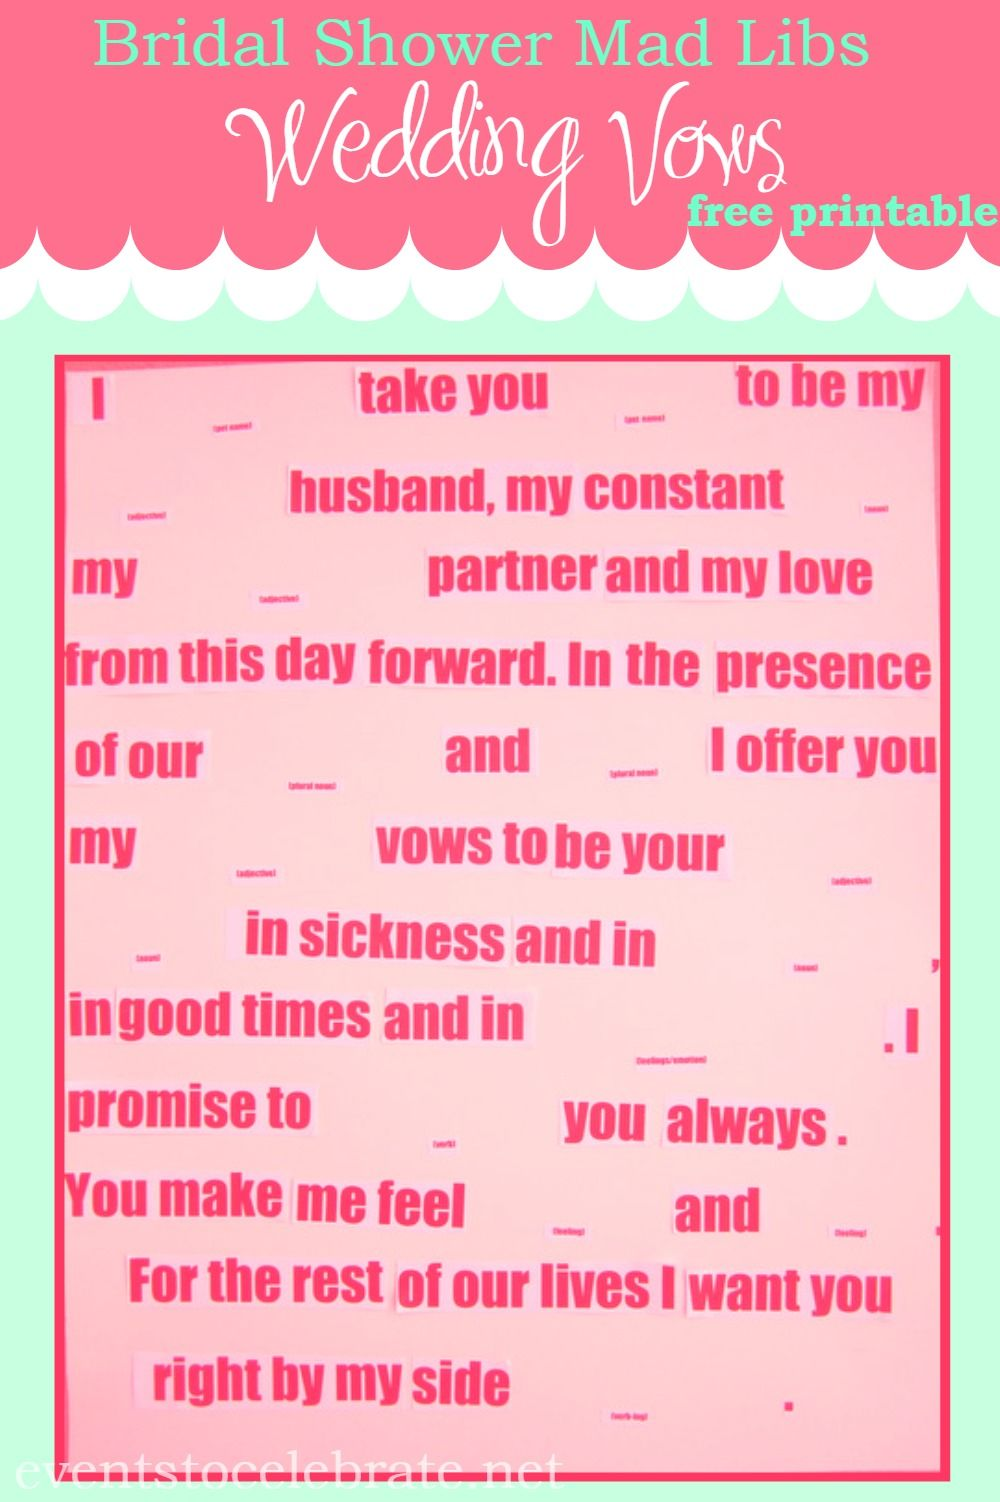 mad libs wedding vows free printable eventstocelebratenet